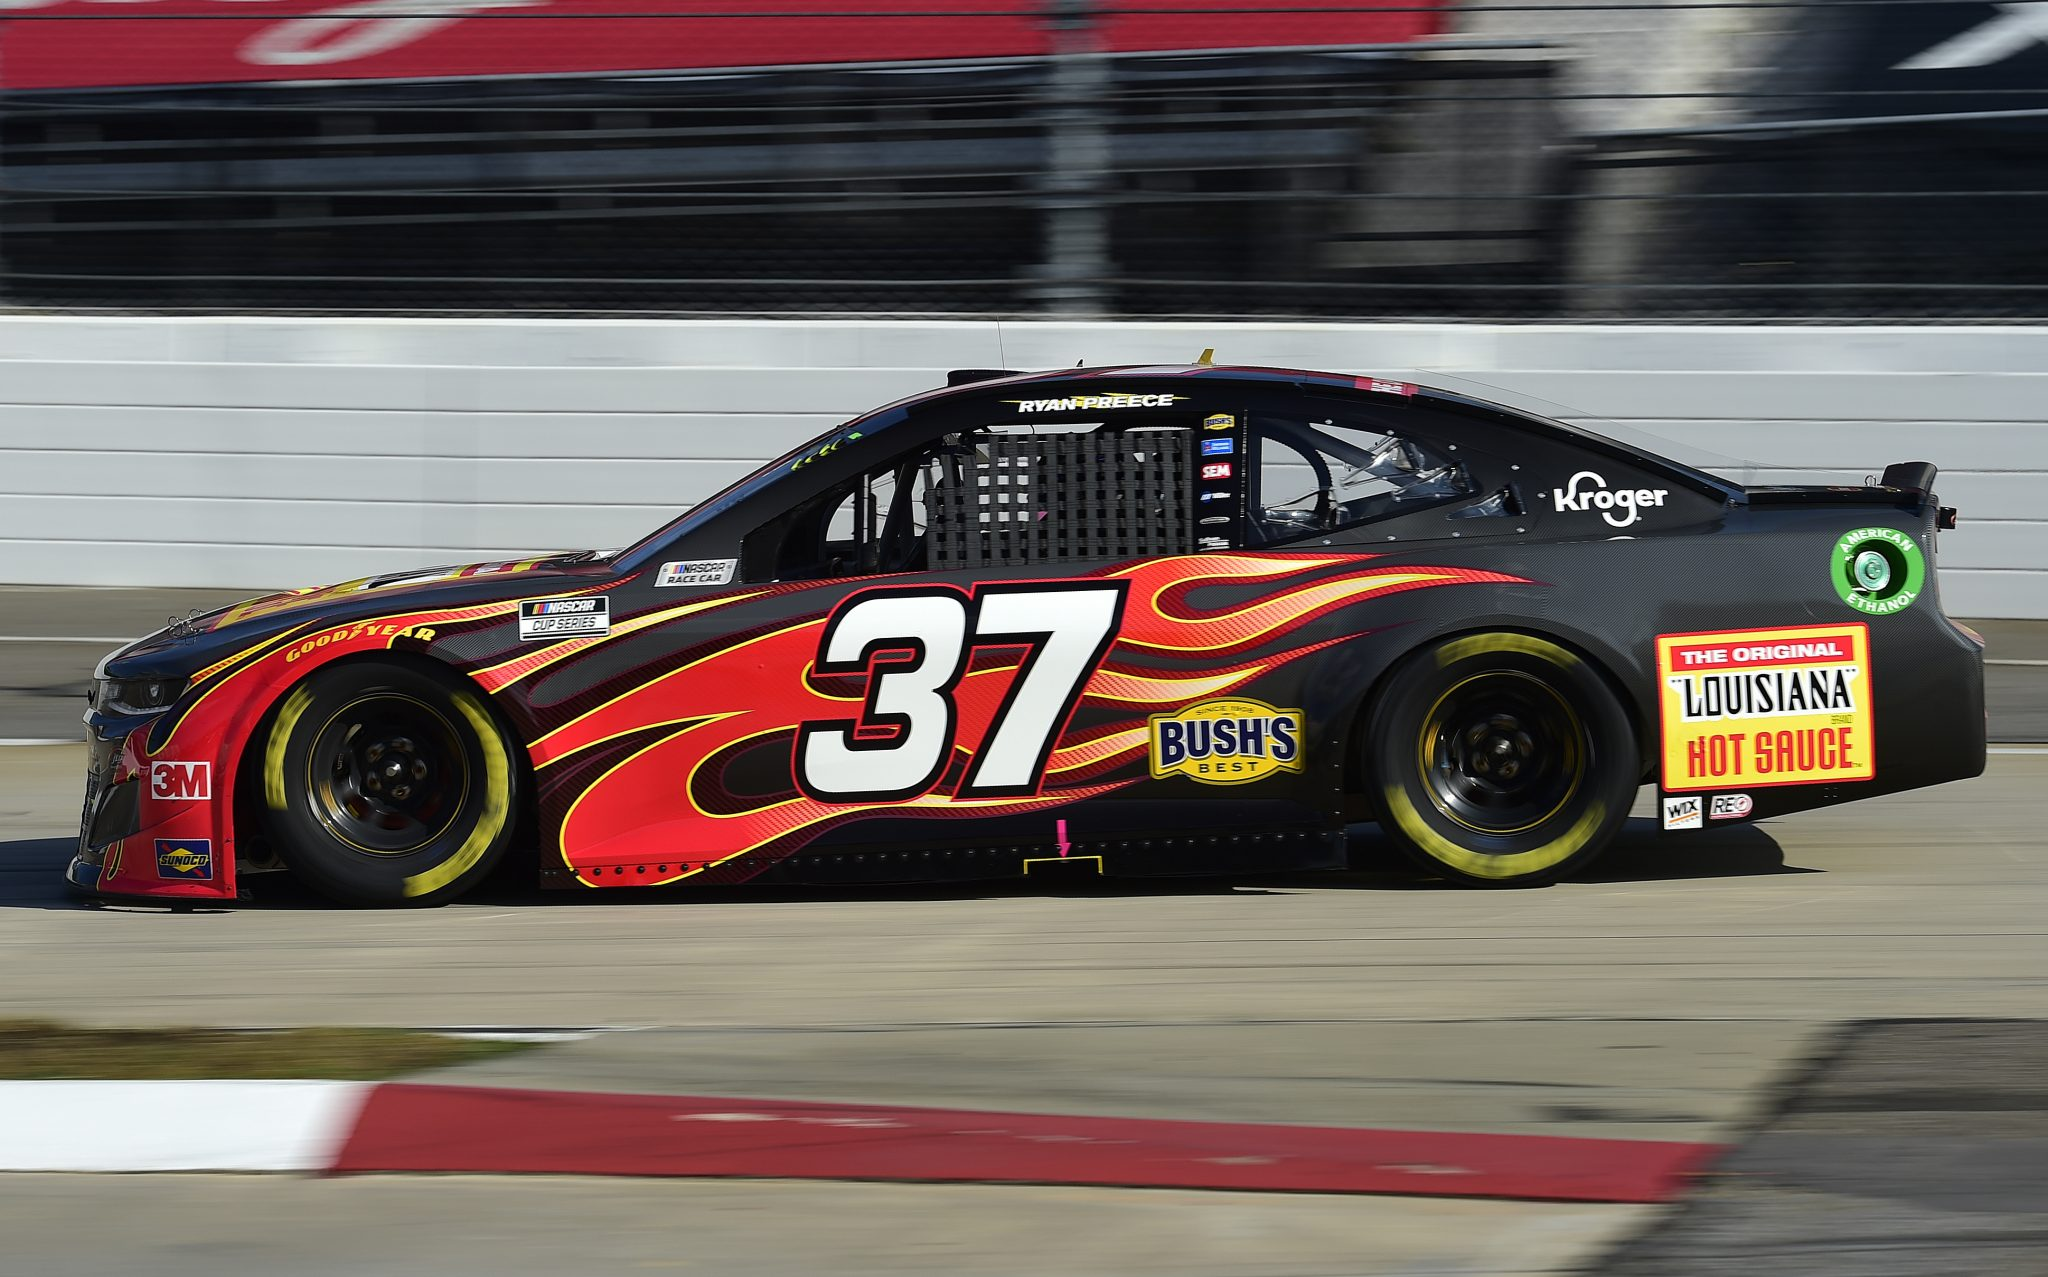 MARTINSVILLE, VIRGINIA - NOVEMBER 01: Ryan Preece, driver of the #37 Louisiana Hot Sauce Chevrolet, drives during the NASCAR Cup Series Xfinity 500 at Martinsville Speedway on November 01, 2020 in Martinsville, Virginia. (Photo by Jared C. Tilton/Getty Images) | Getty Images